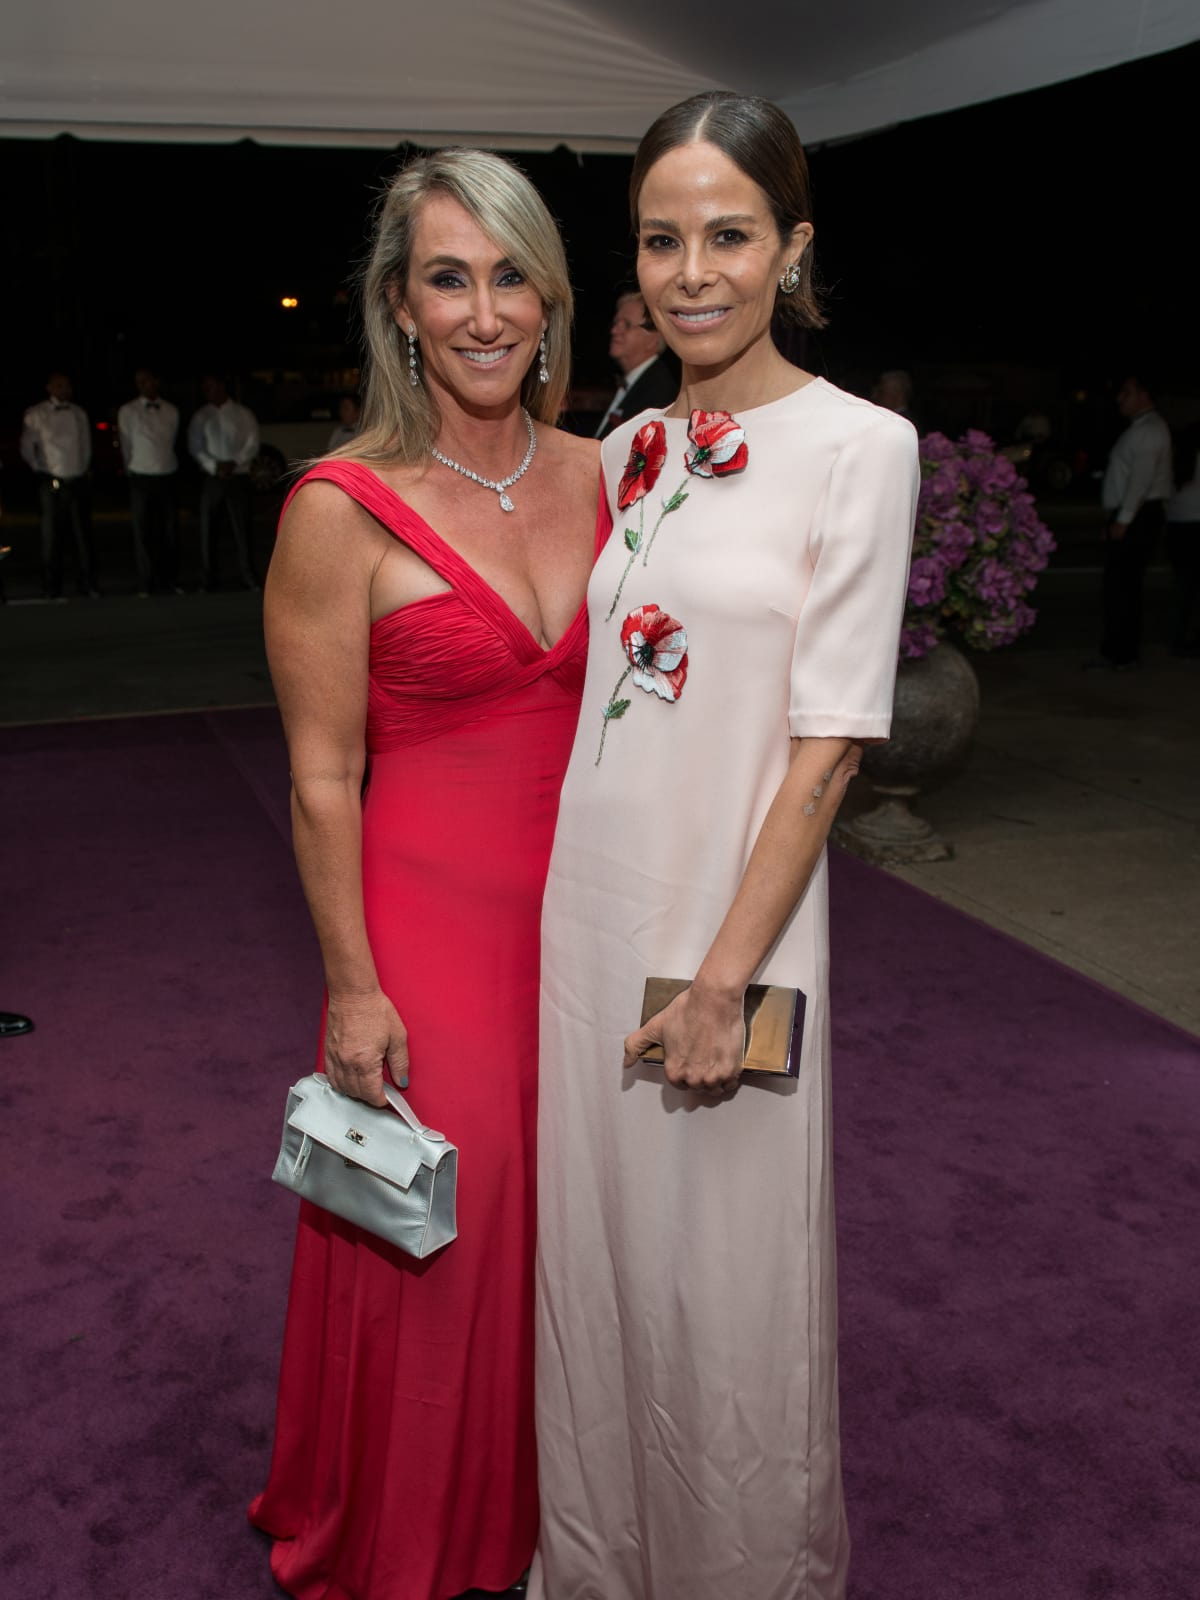 Courtney Lanier Sarofim, Allison Sarofim at MFAH Grand Gala Ball 2017